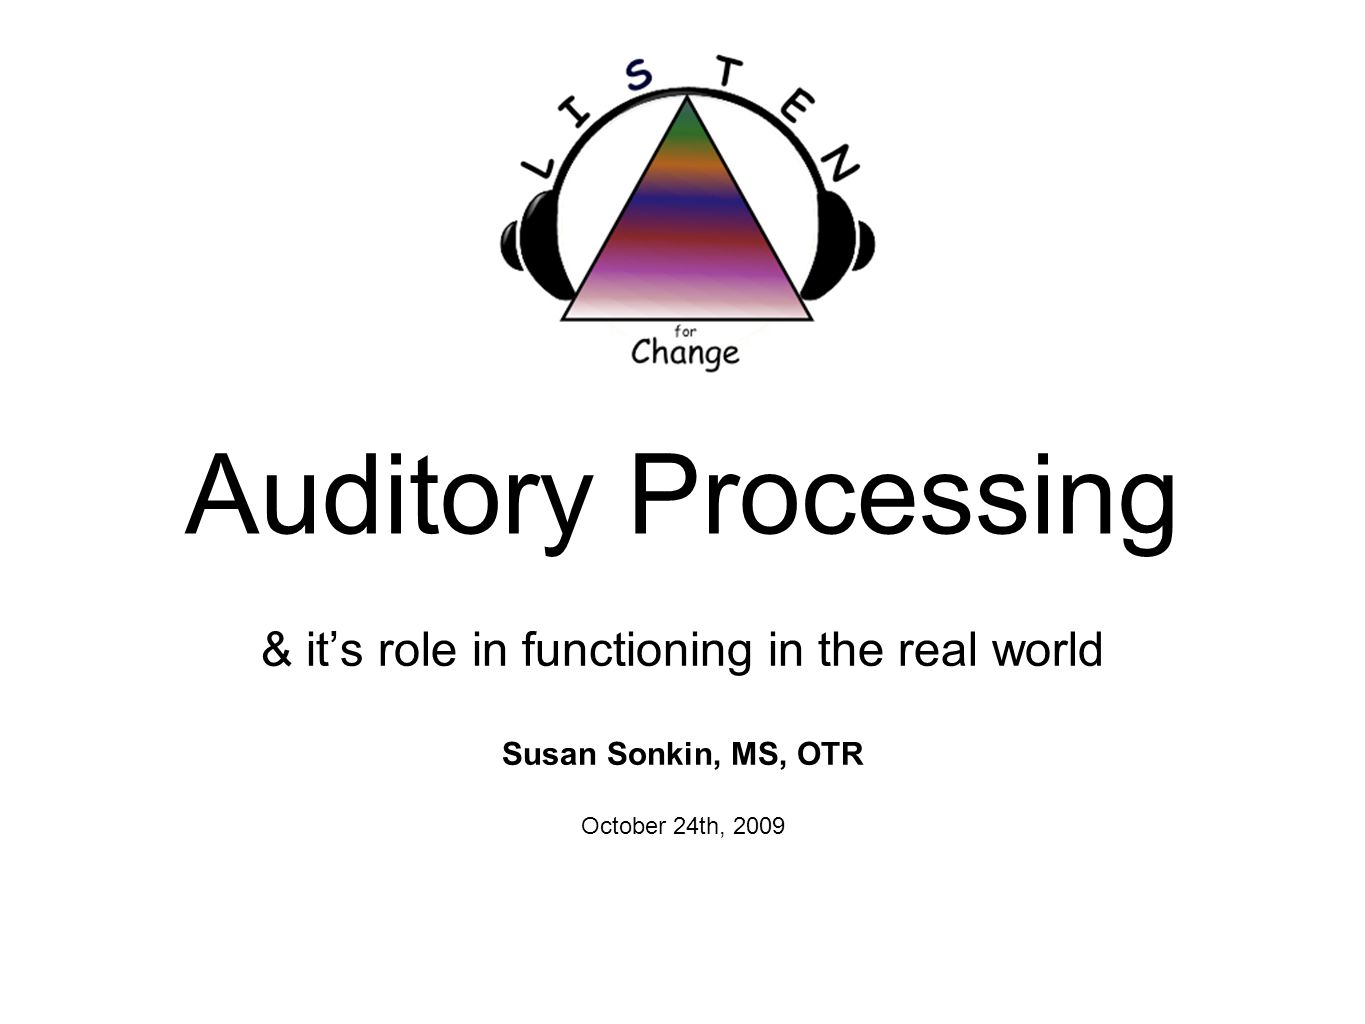 Auditory Processing & its role in functioning in the real world Susan Sonkin, MS, OTR October 24th, 2009